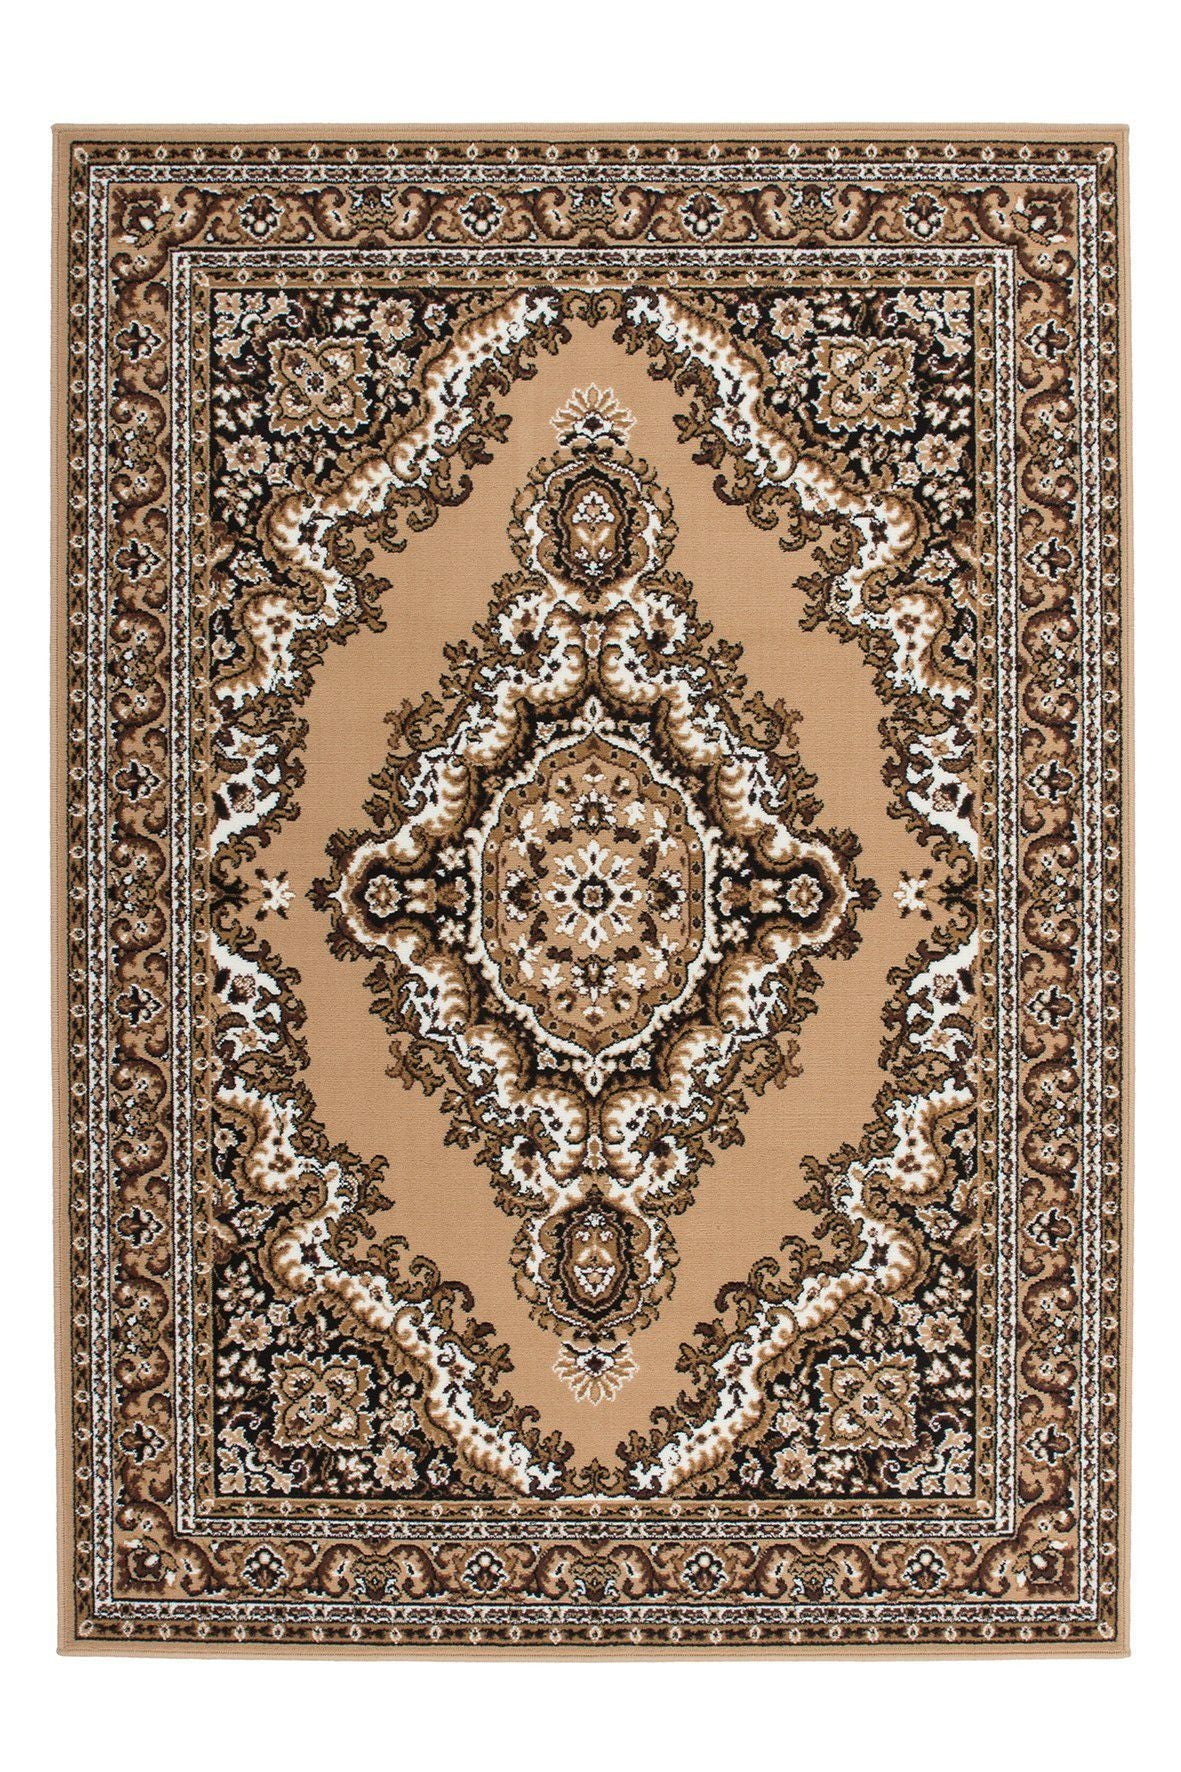 Sahara 102 Cheap Traditional Beige Rug with Centre Medallion - Lalee Designer Rugs